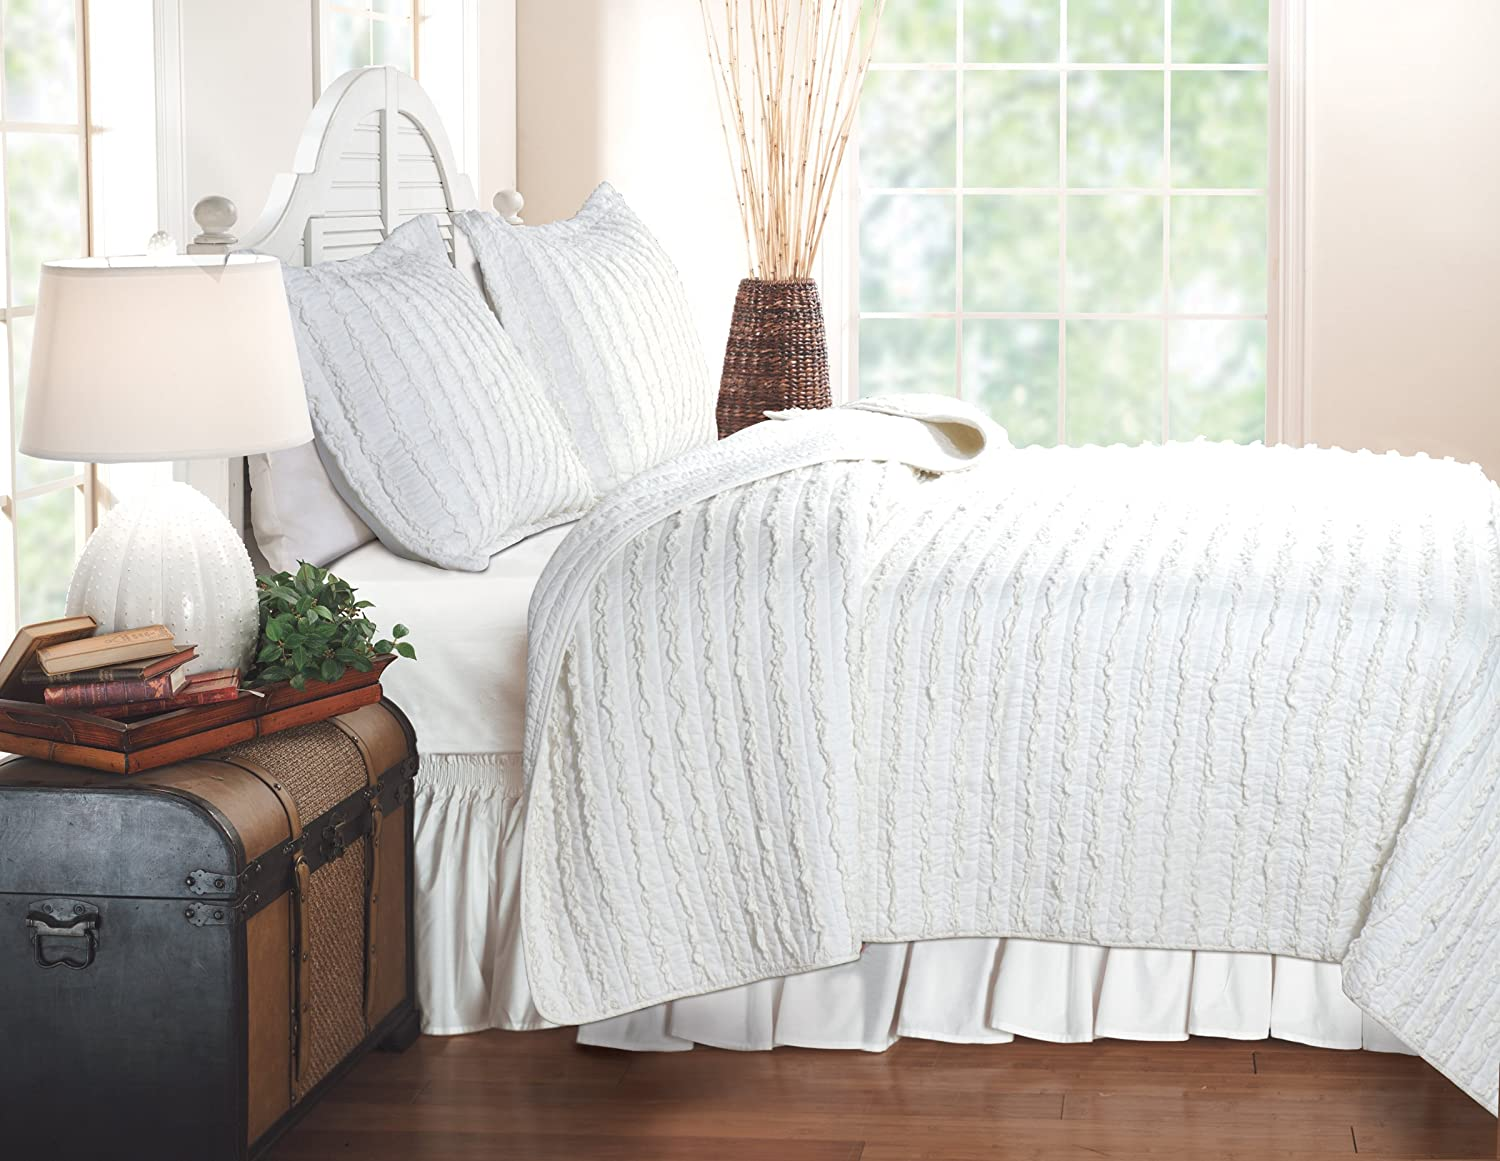 Greenland Home Ruffled White Quilt Set, King